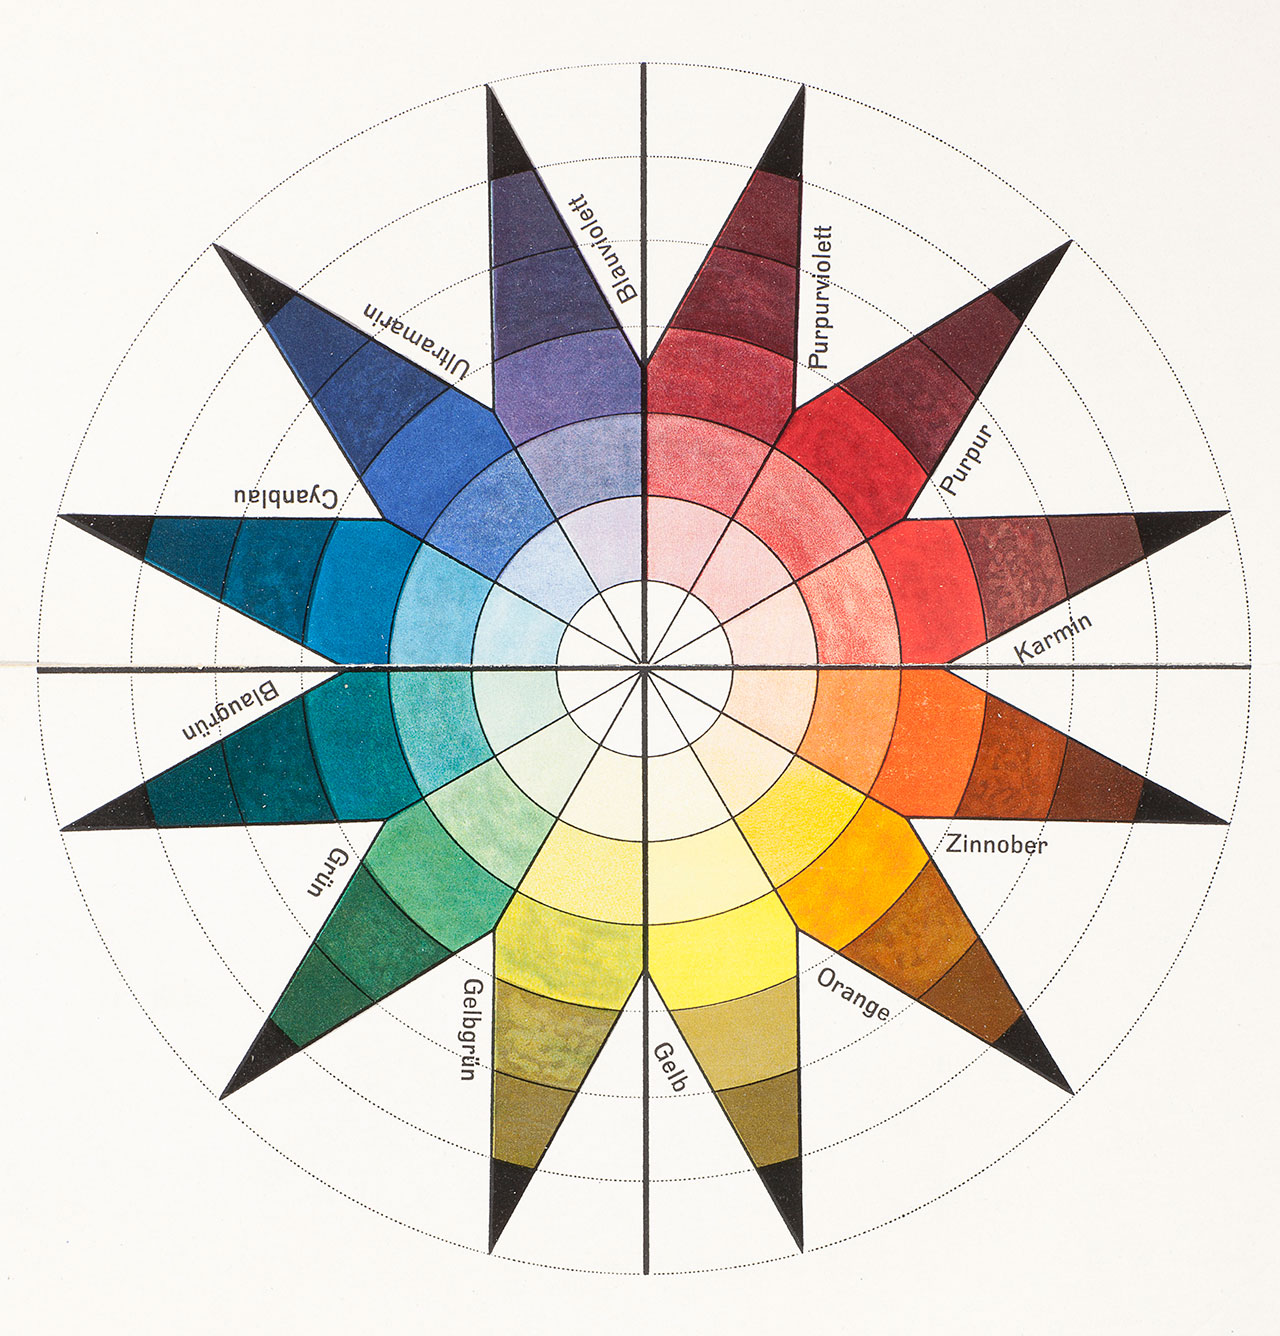 Johannes Itten, colour wheel in 7 shades and 12 tones, colour plate in: Bruno Adler, »Utopia. Dokumente der Wirklichkeit«, Weimar 1921. Lithography, 47,4 × 32,2 cm, Collection Vitra Design Museum, © VG Bild-Kunst Bonn, 2015.